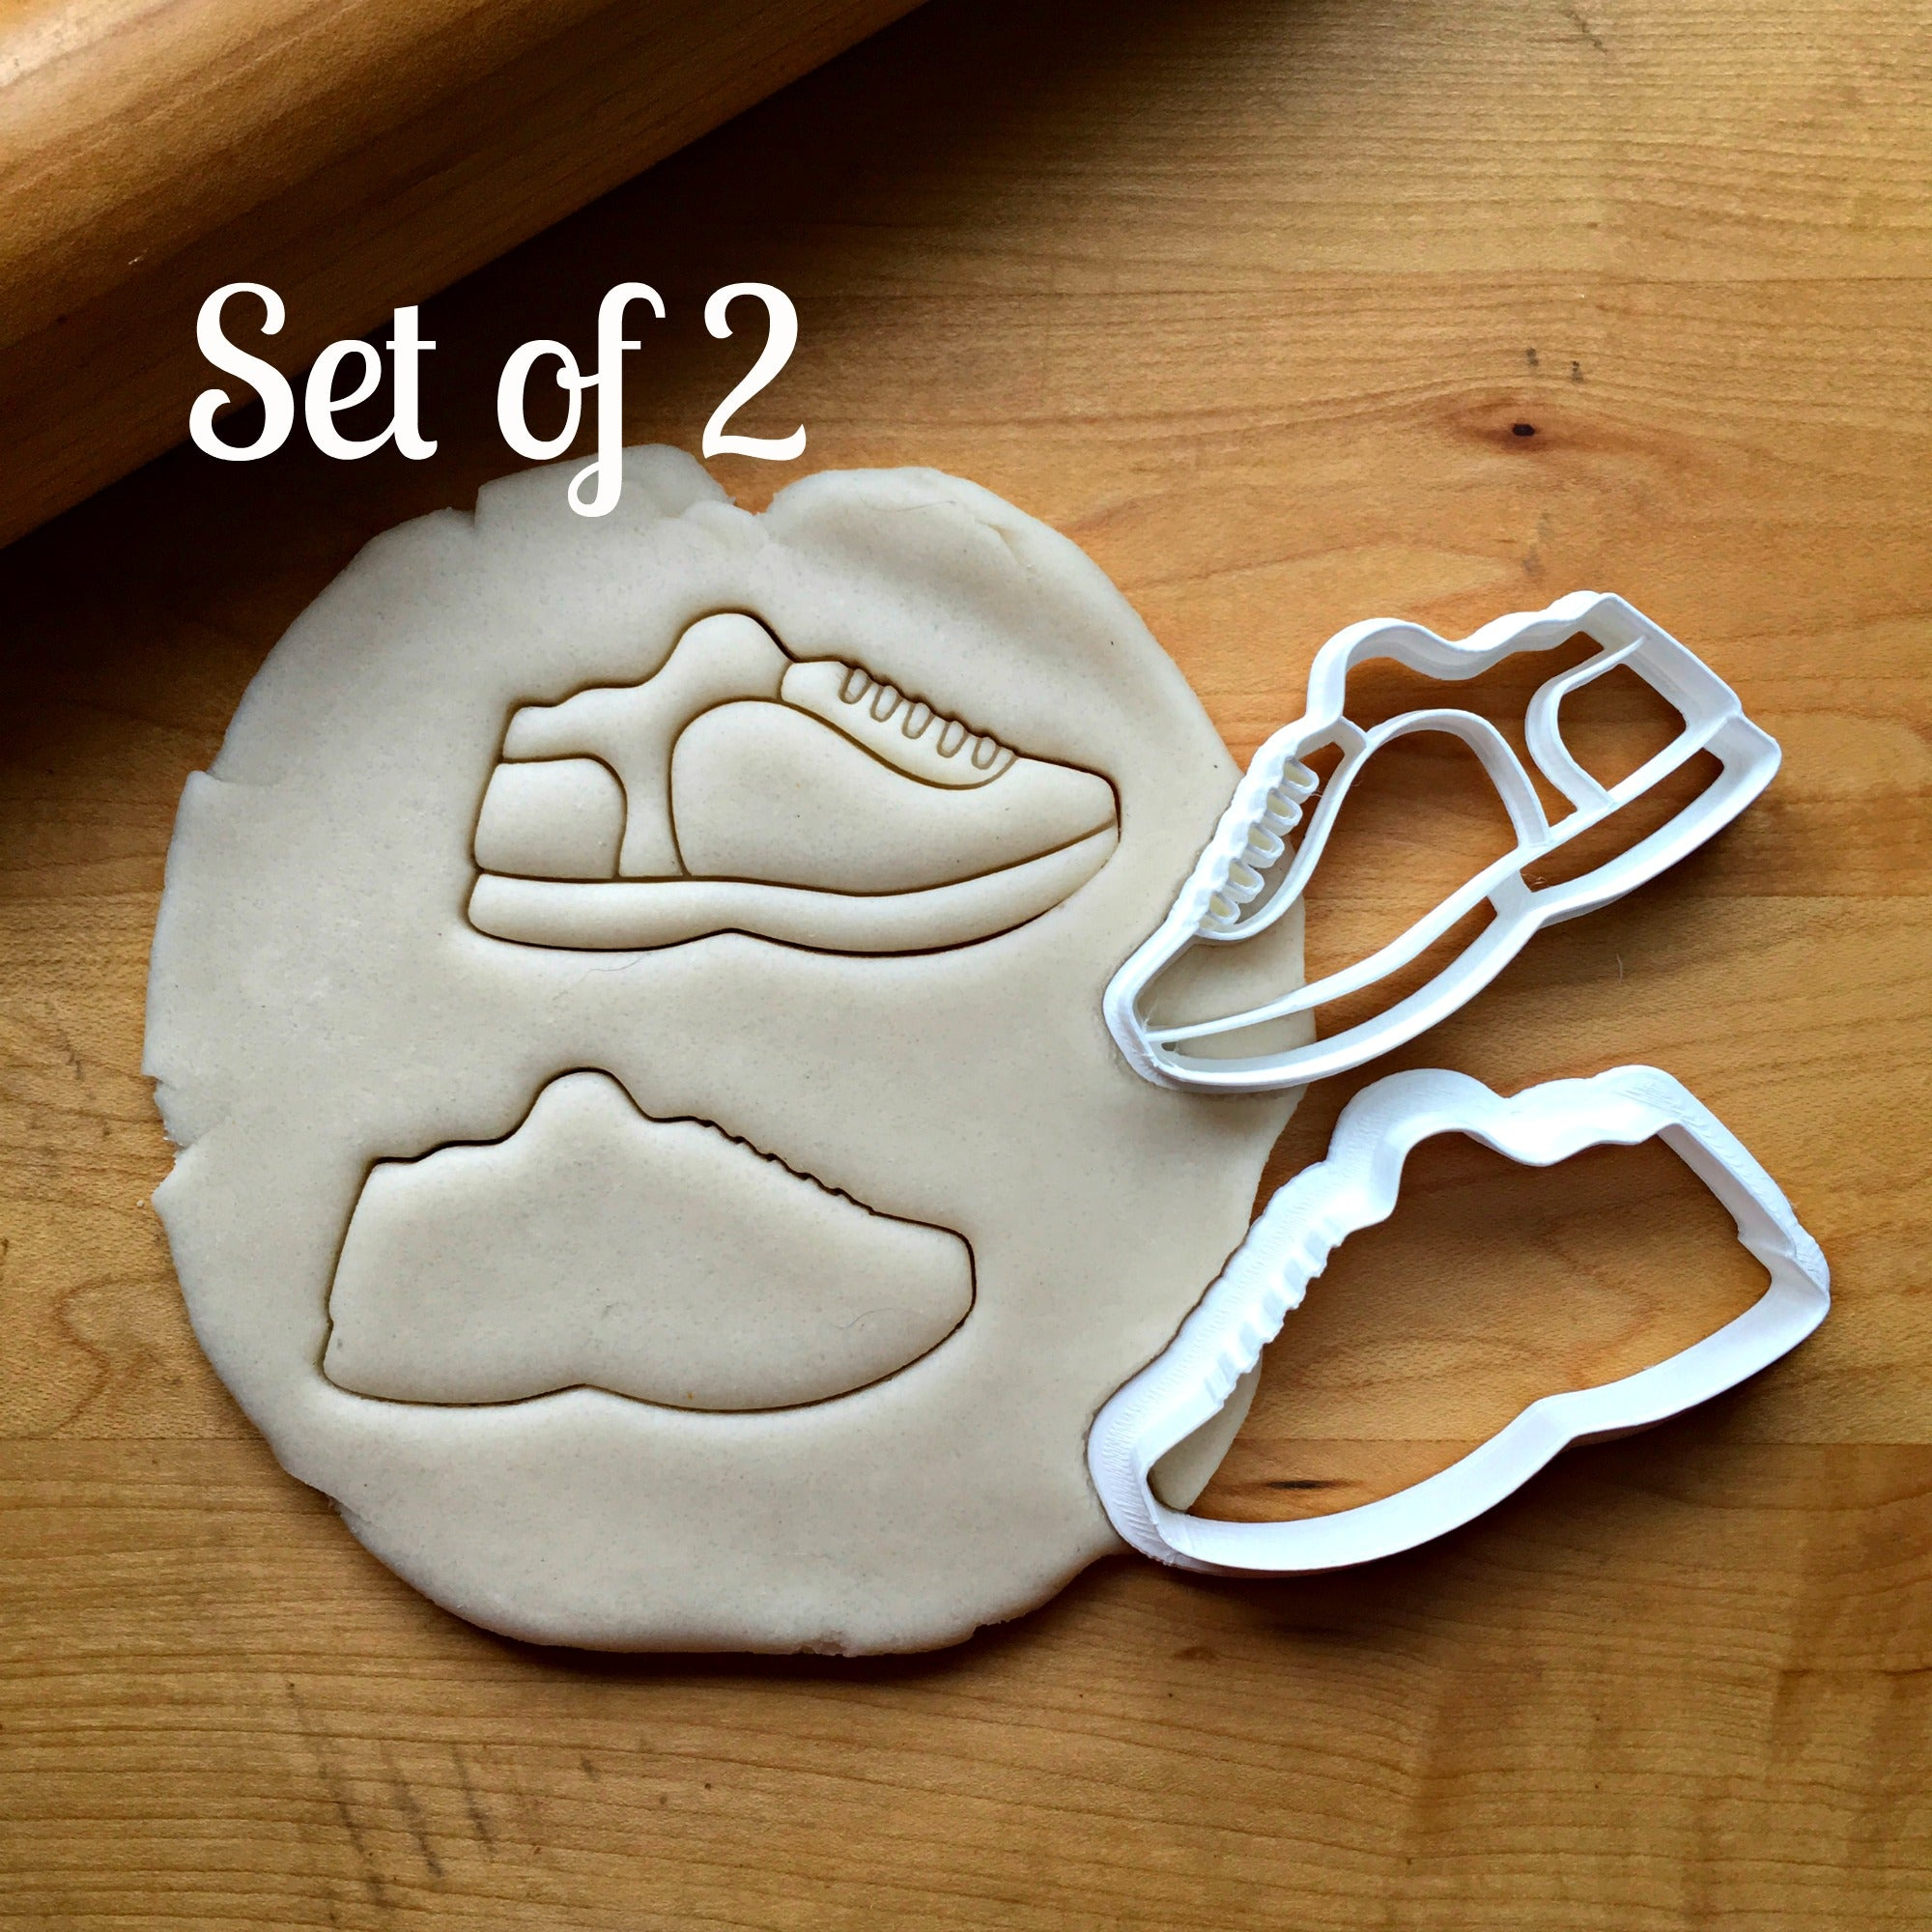 Set of 2 Sneaker Cookie Cutters/Dishwasher Safe